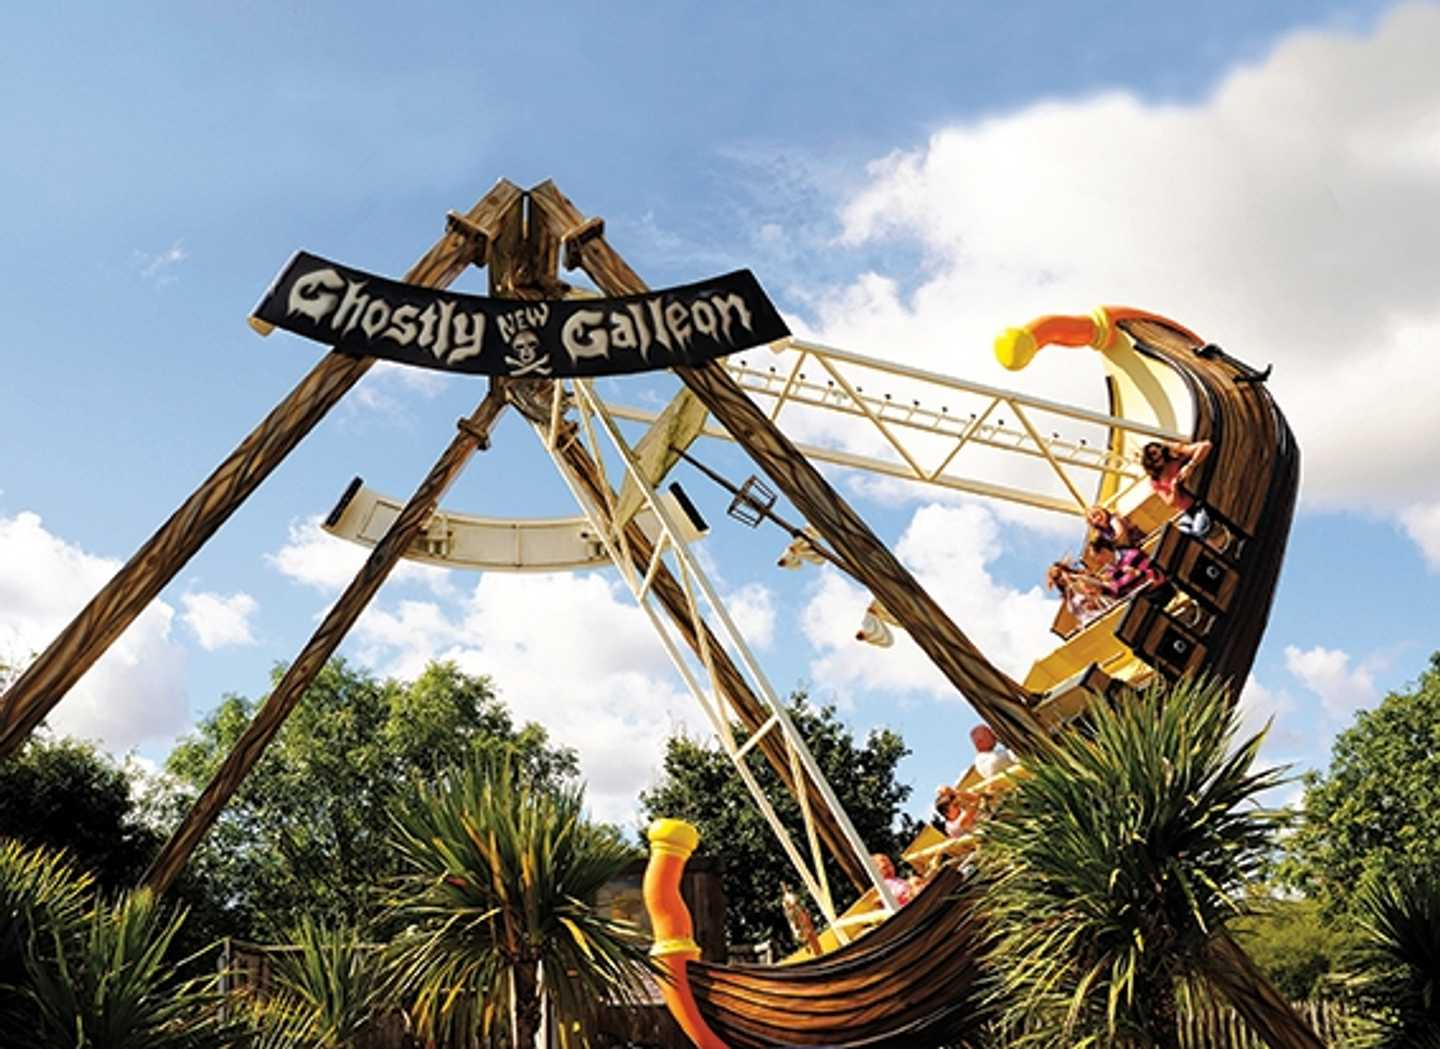 Ride the Ghostly Galleon at Adventure Wonderland